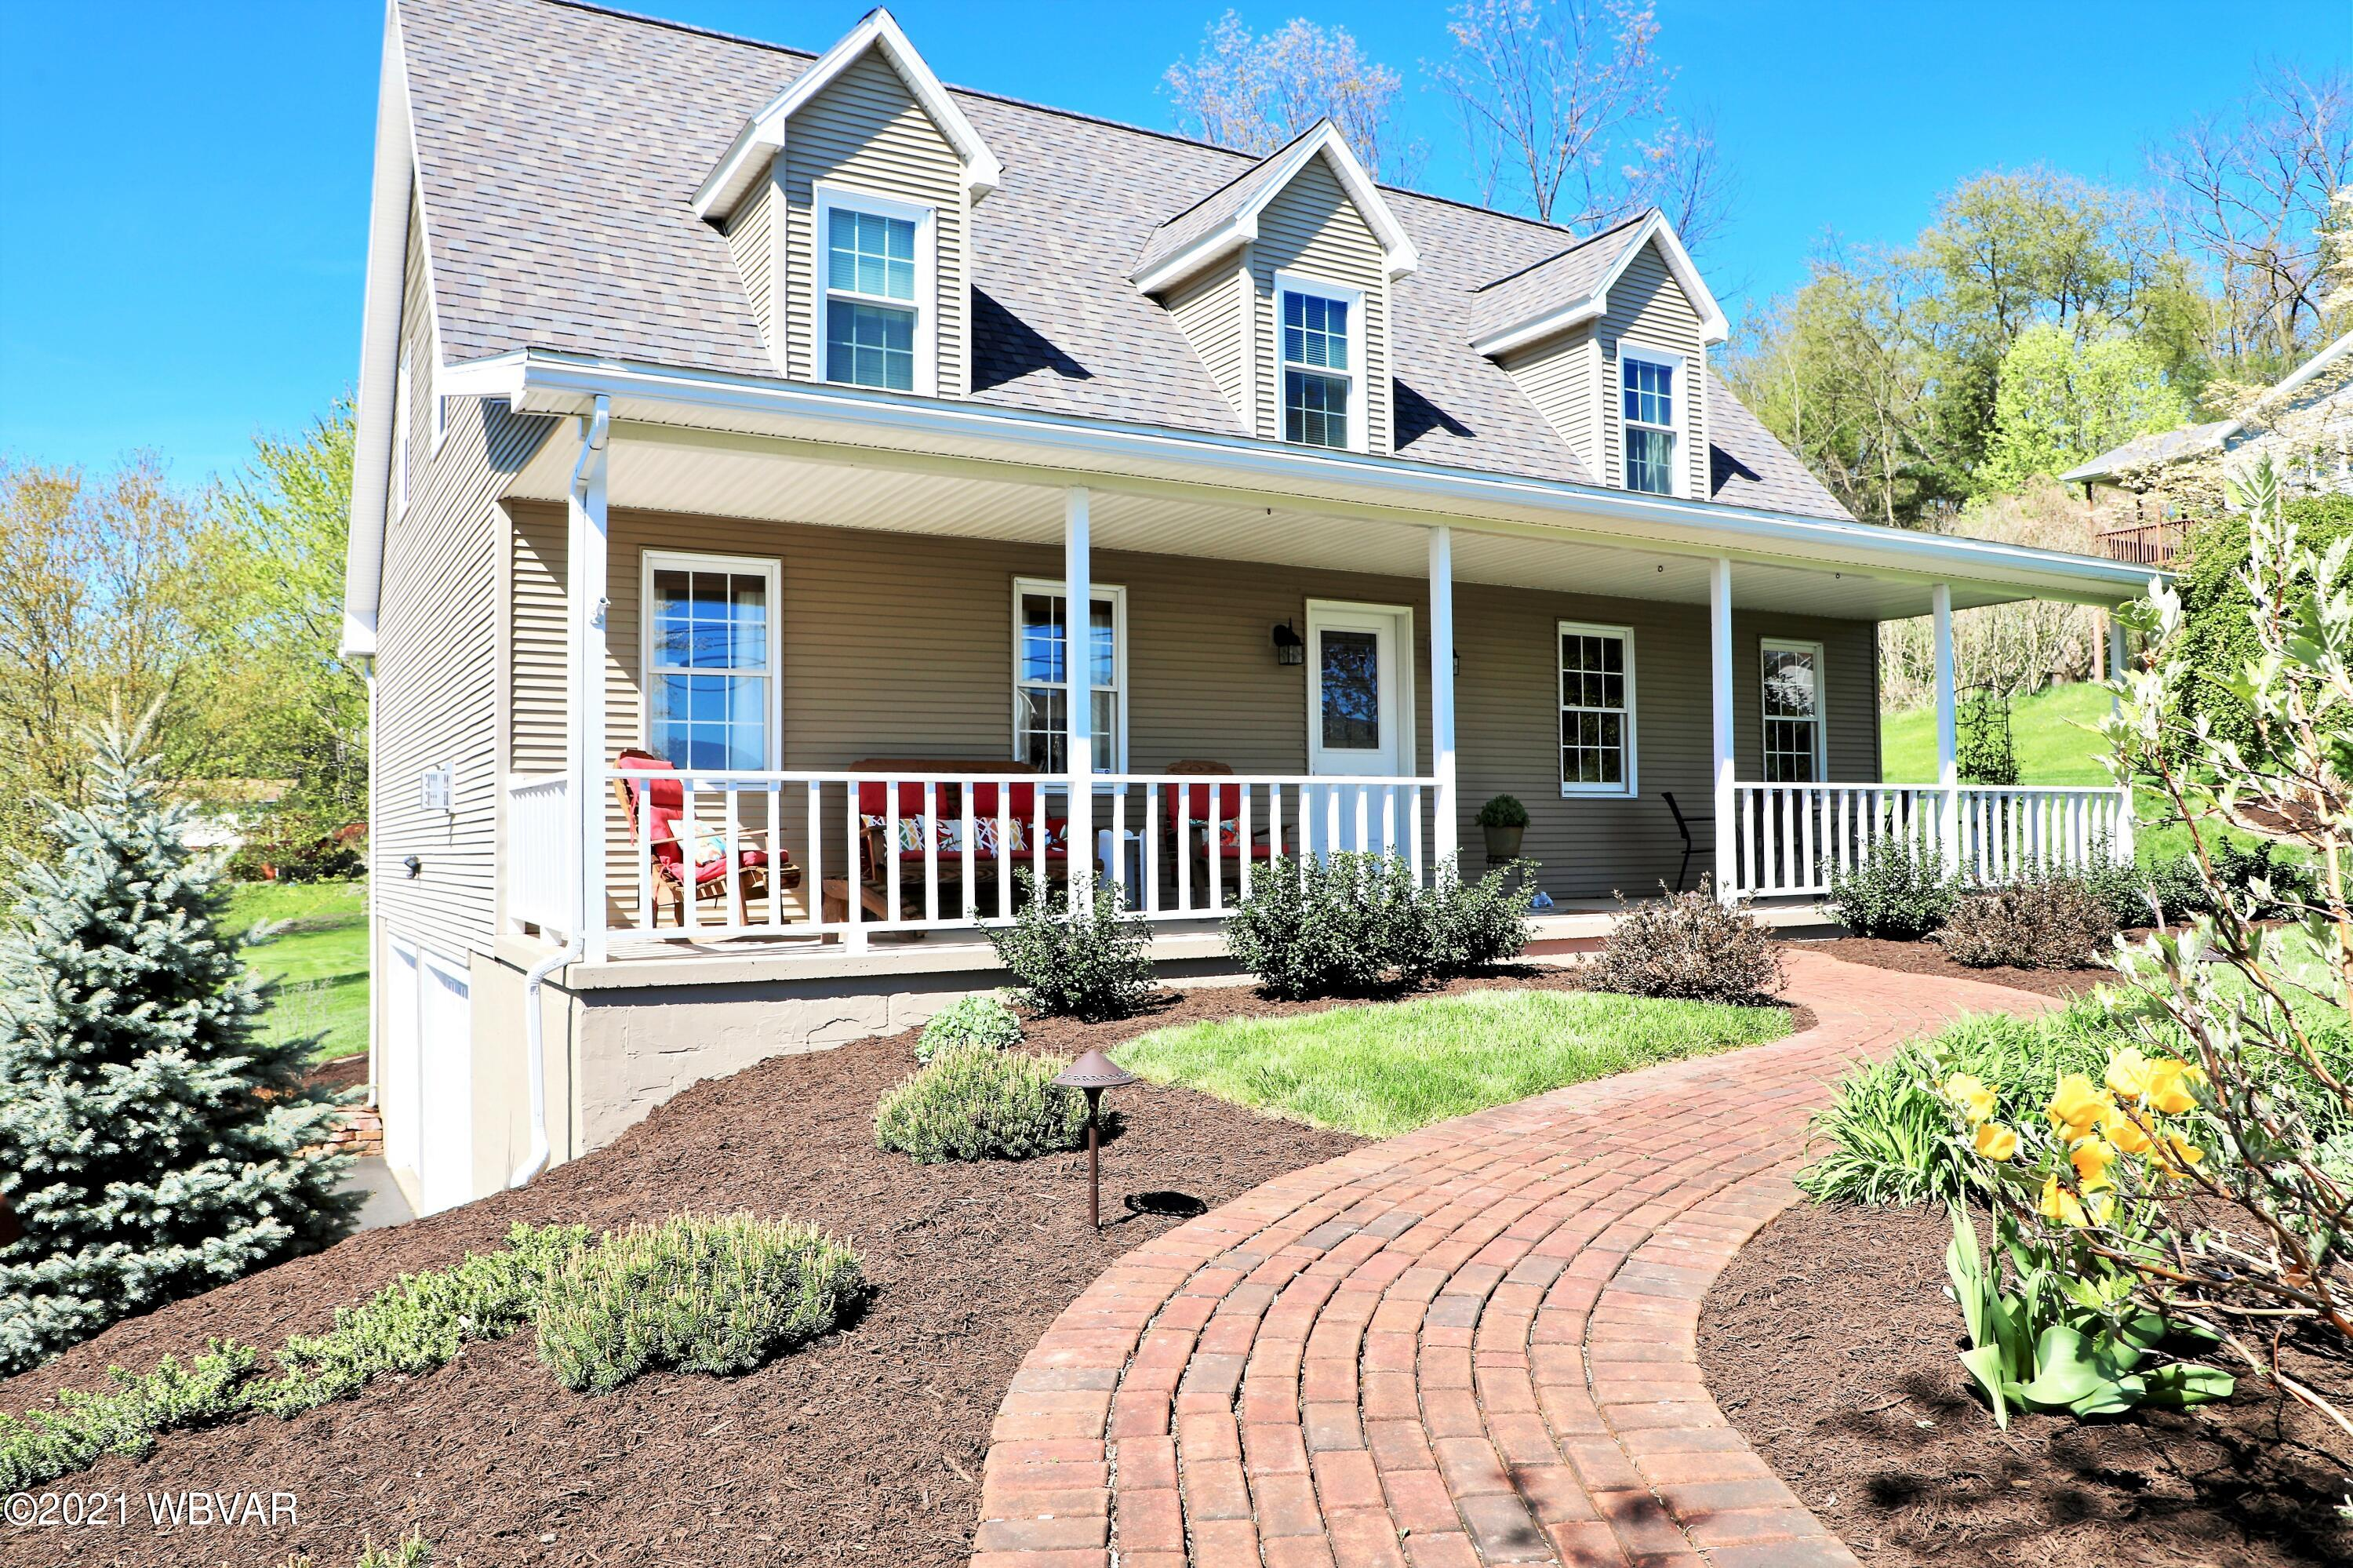 2005 HEIM HILL ROAD, Montoursville, PA 17754, 3 Bedrooms Bedrooms, ,2.5 BathroomsBathrooms,Residential,For sale,HEIM HILL,WB-92461